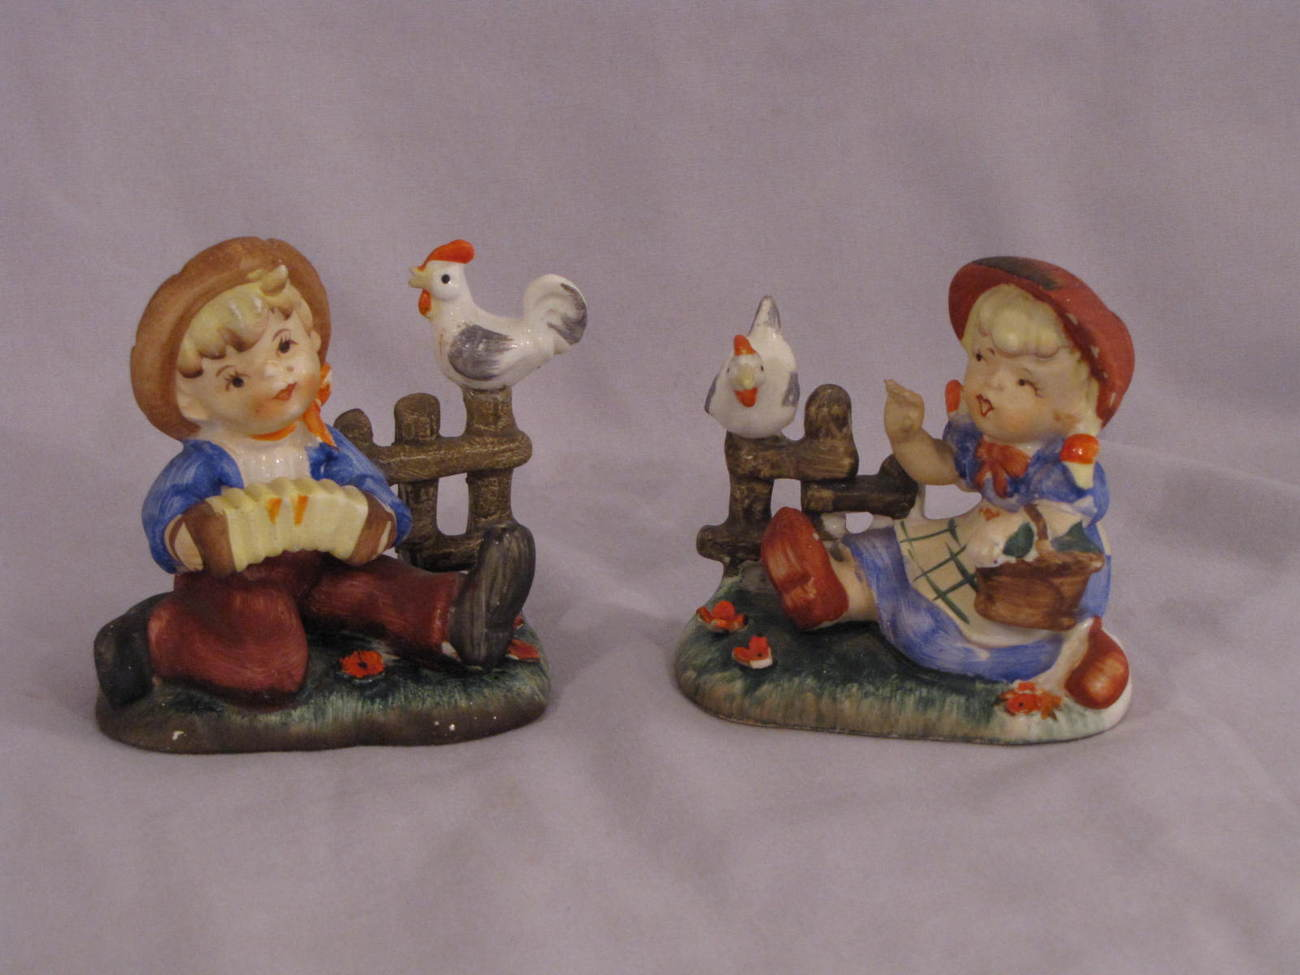 Lipper & Mann Vintage Boy & Girl Figurines Japan